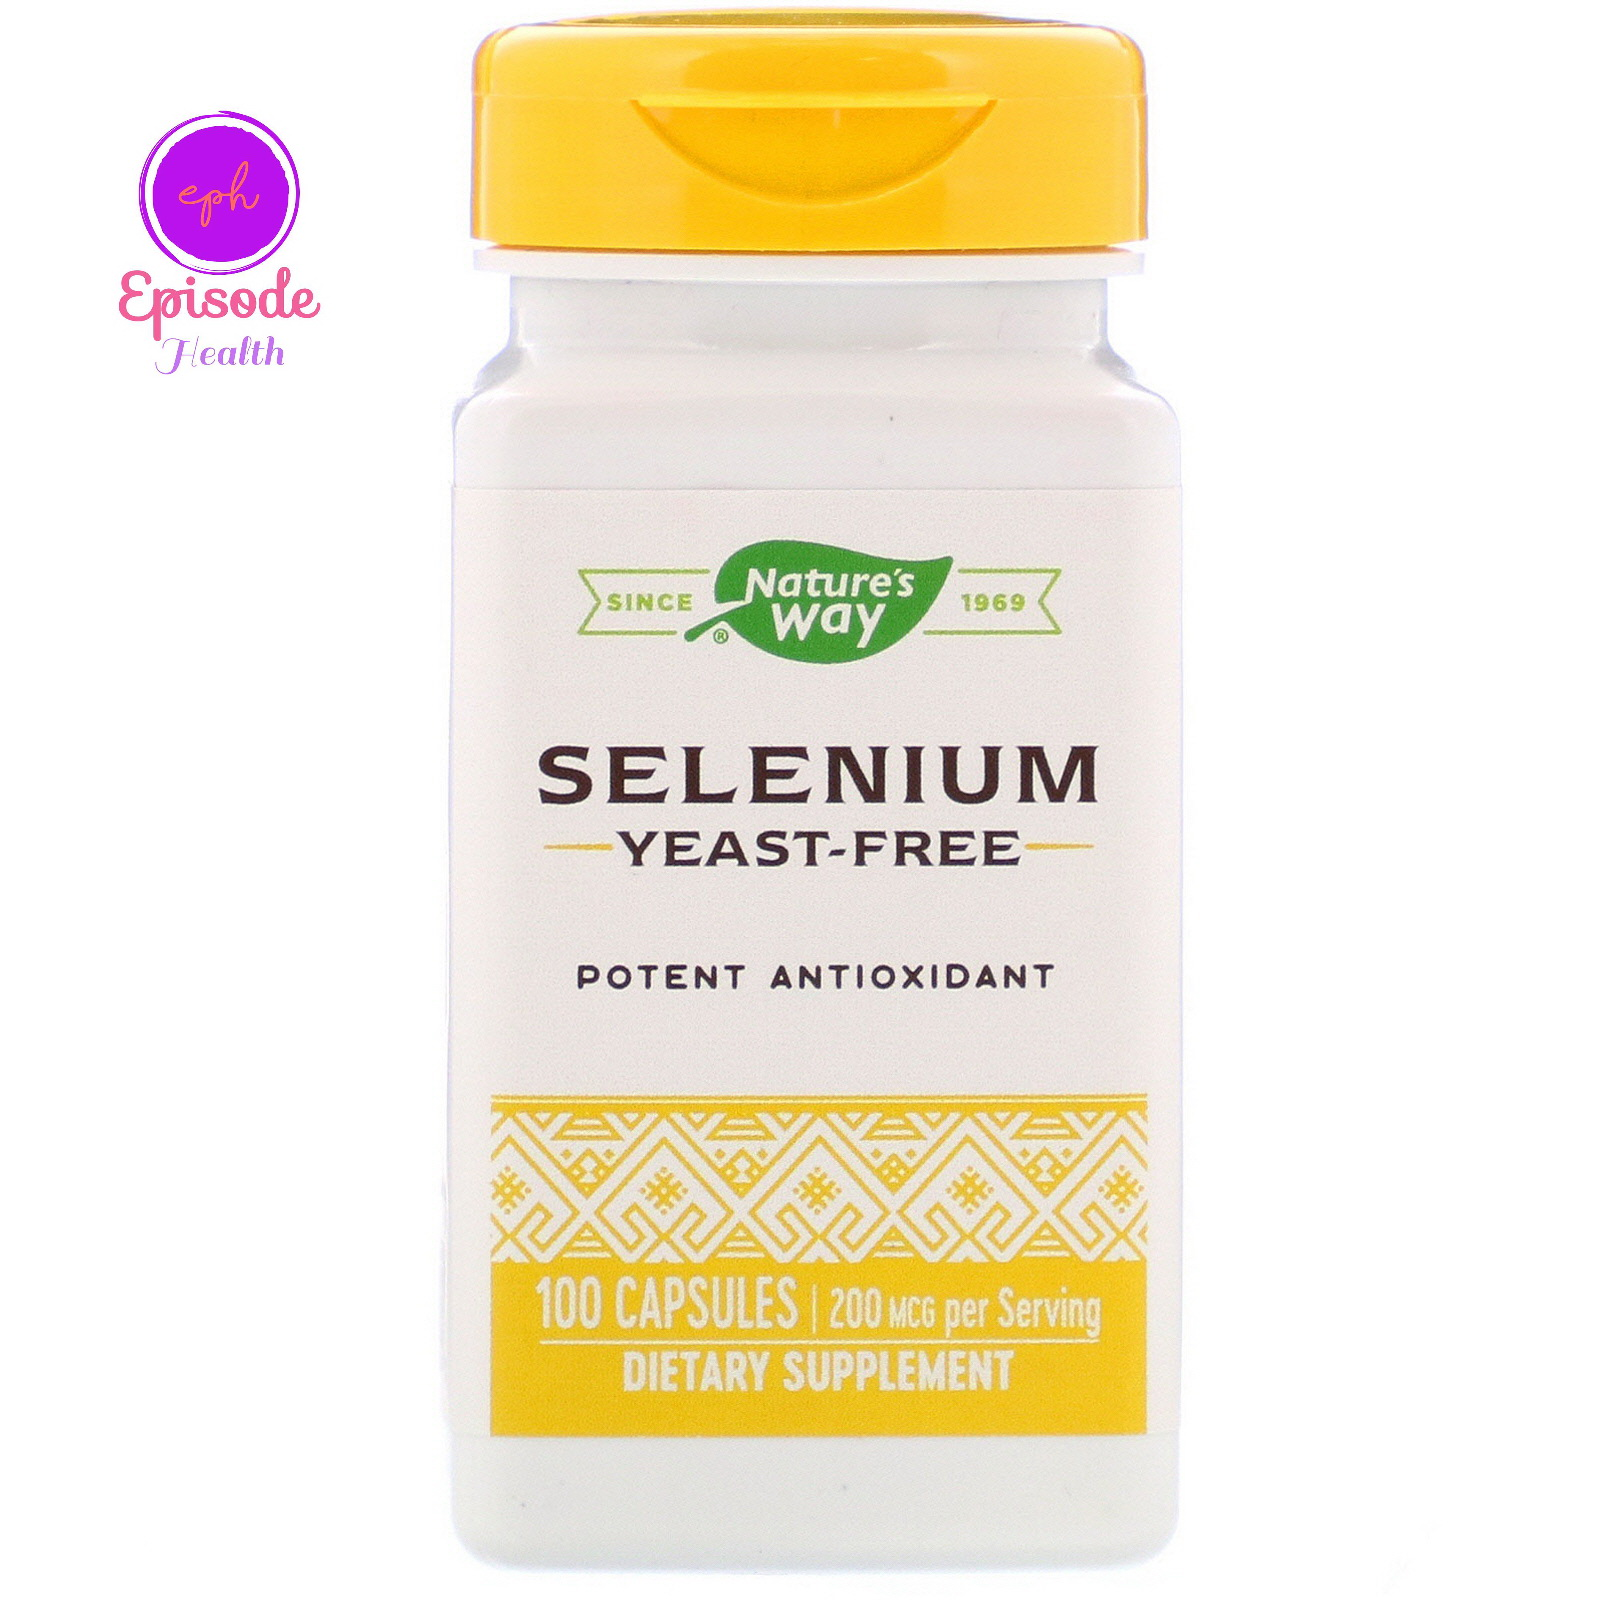 Nature's Way Selenium